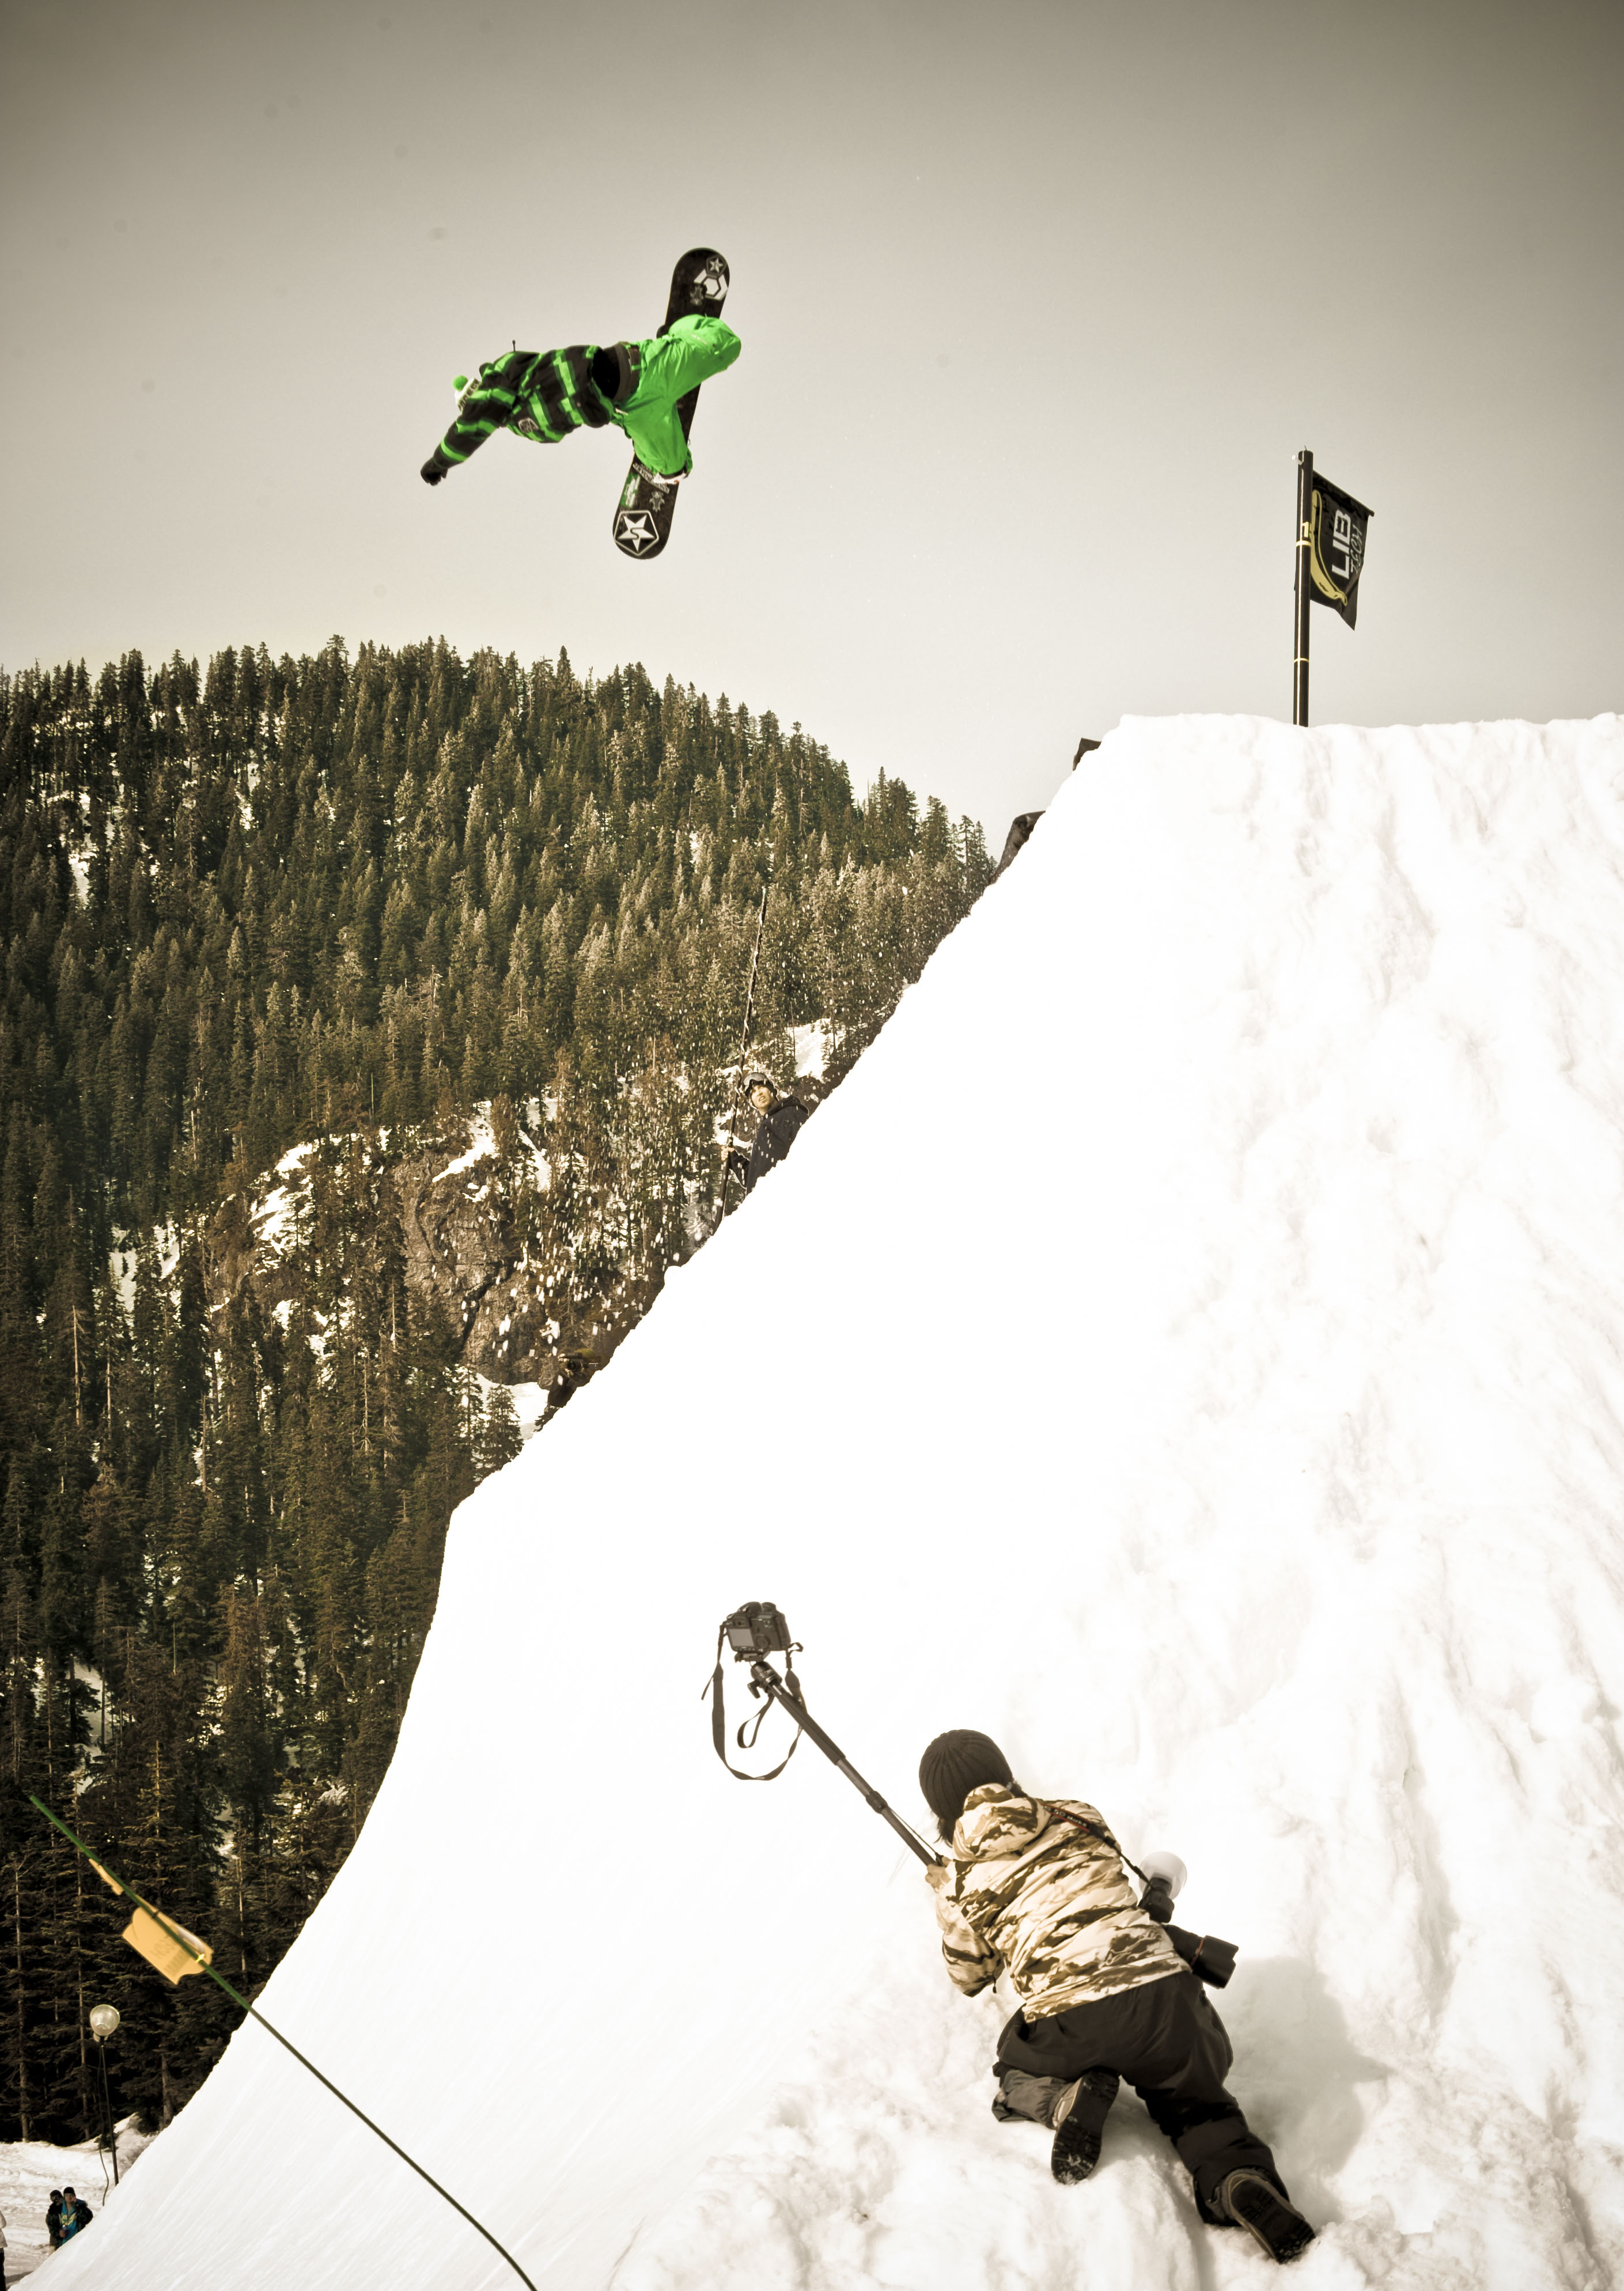 Kurt Jenson - Holy Oly Revival / Snoqualmie - Alex Mertz Photo